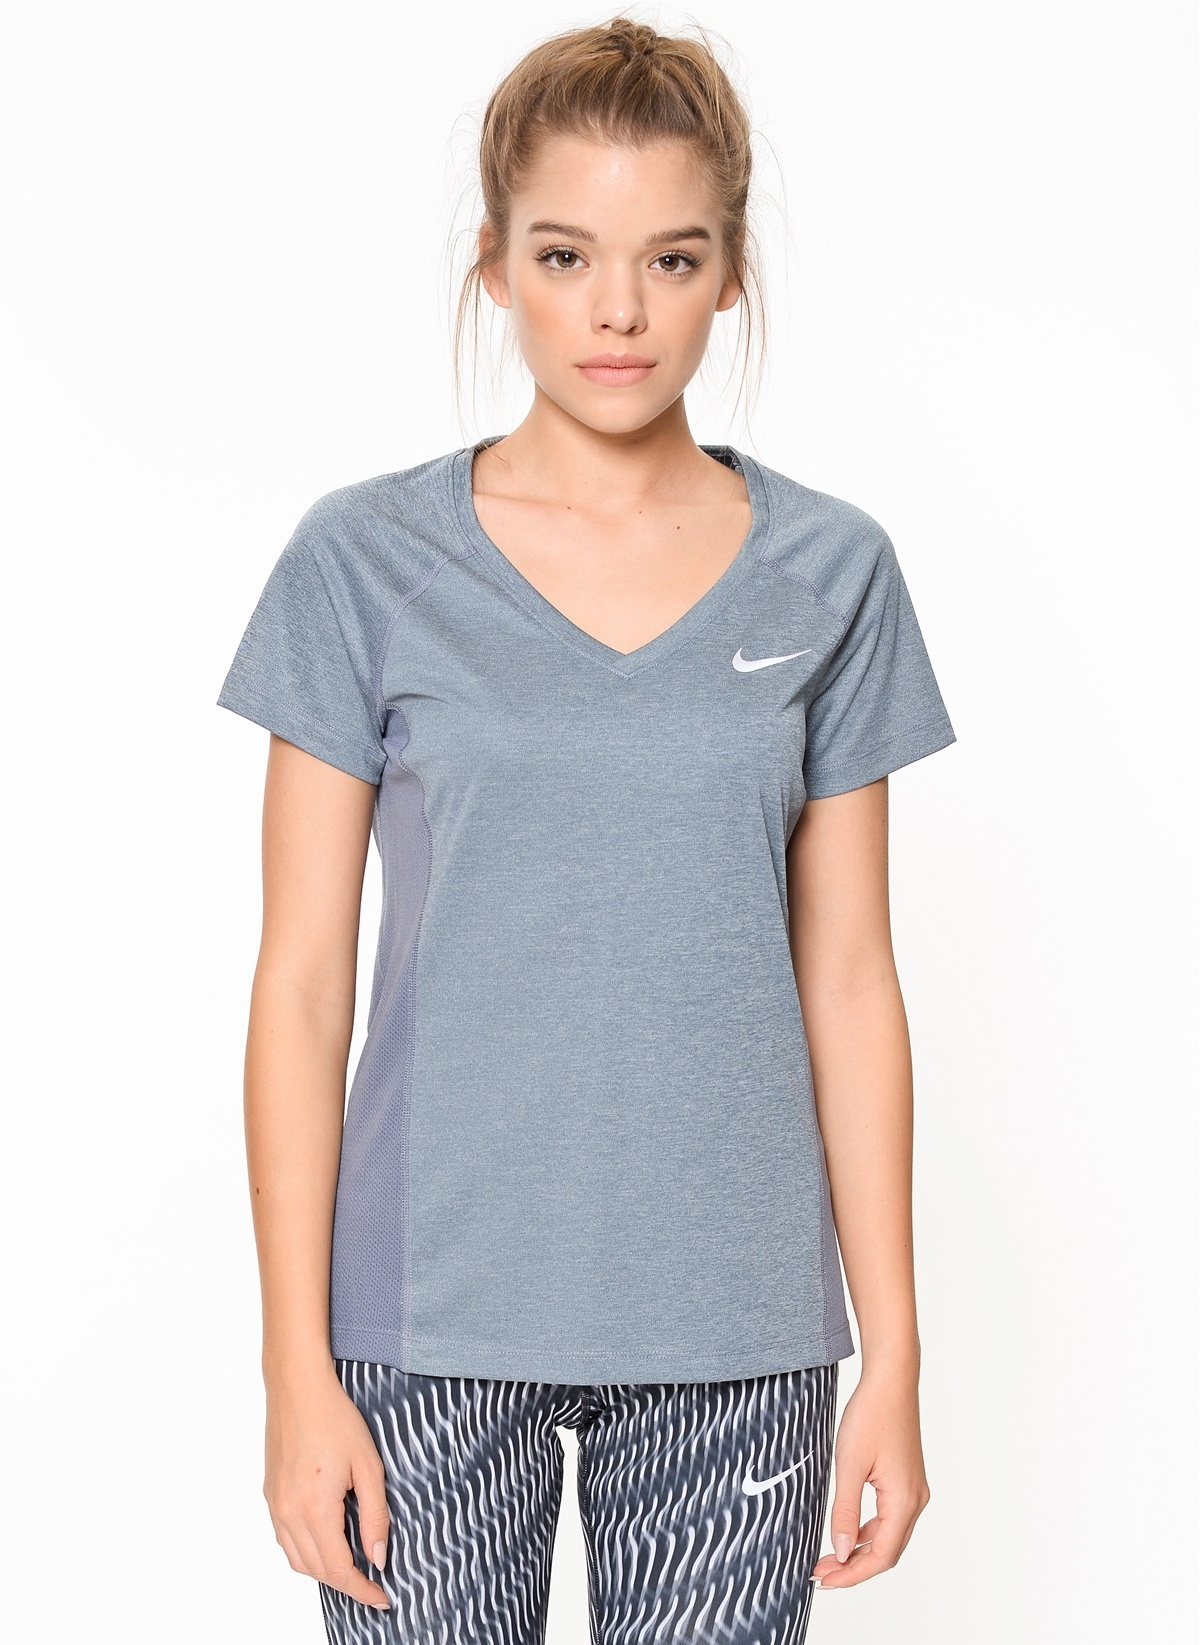 Shirt Miler T Nike Nk Dry Neck 831528 Womens V Top qw8tP0